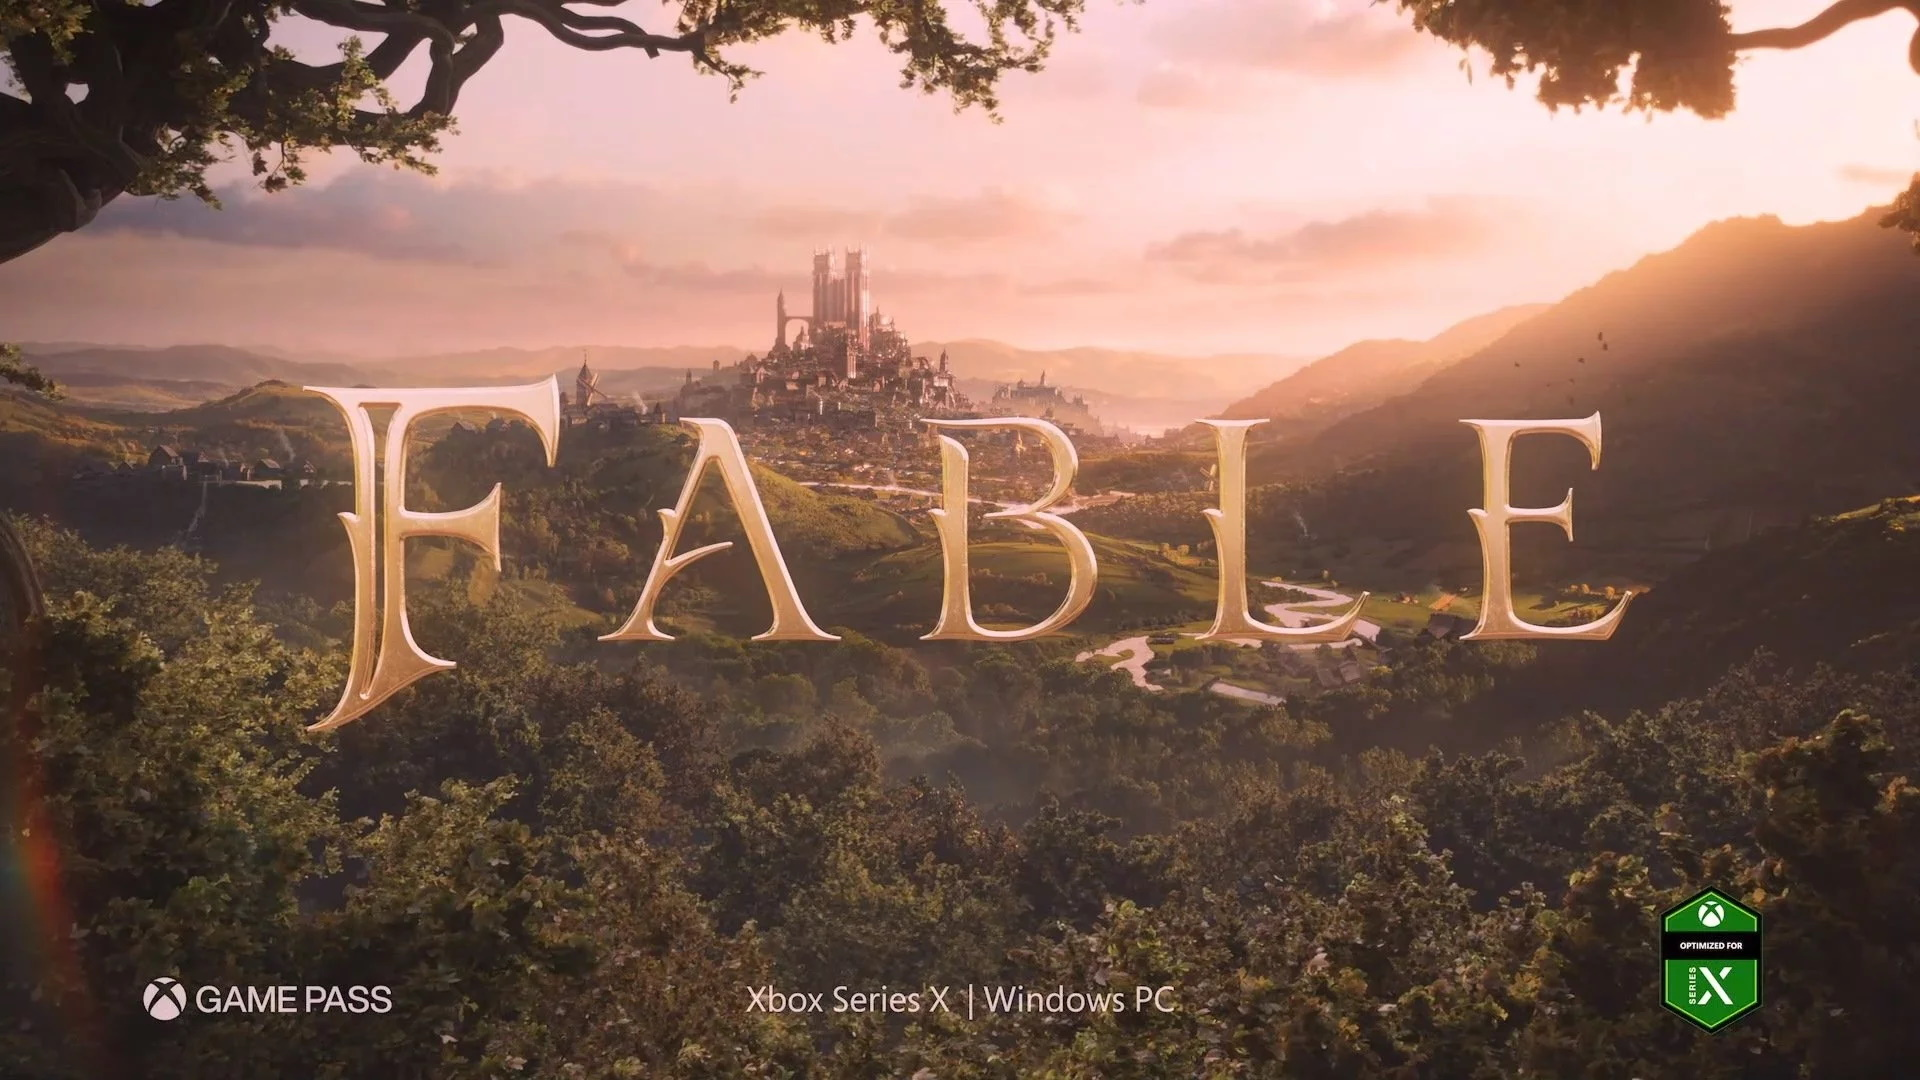 fable-announced-developed-by-playground-games.jpg